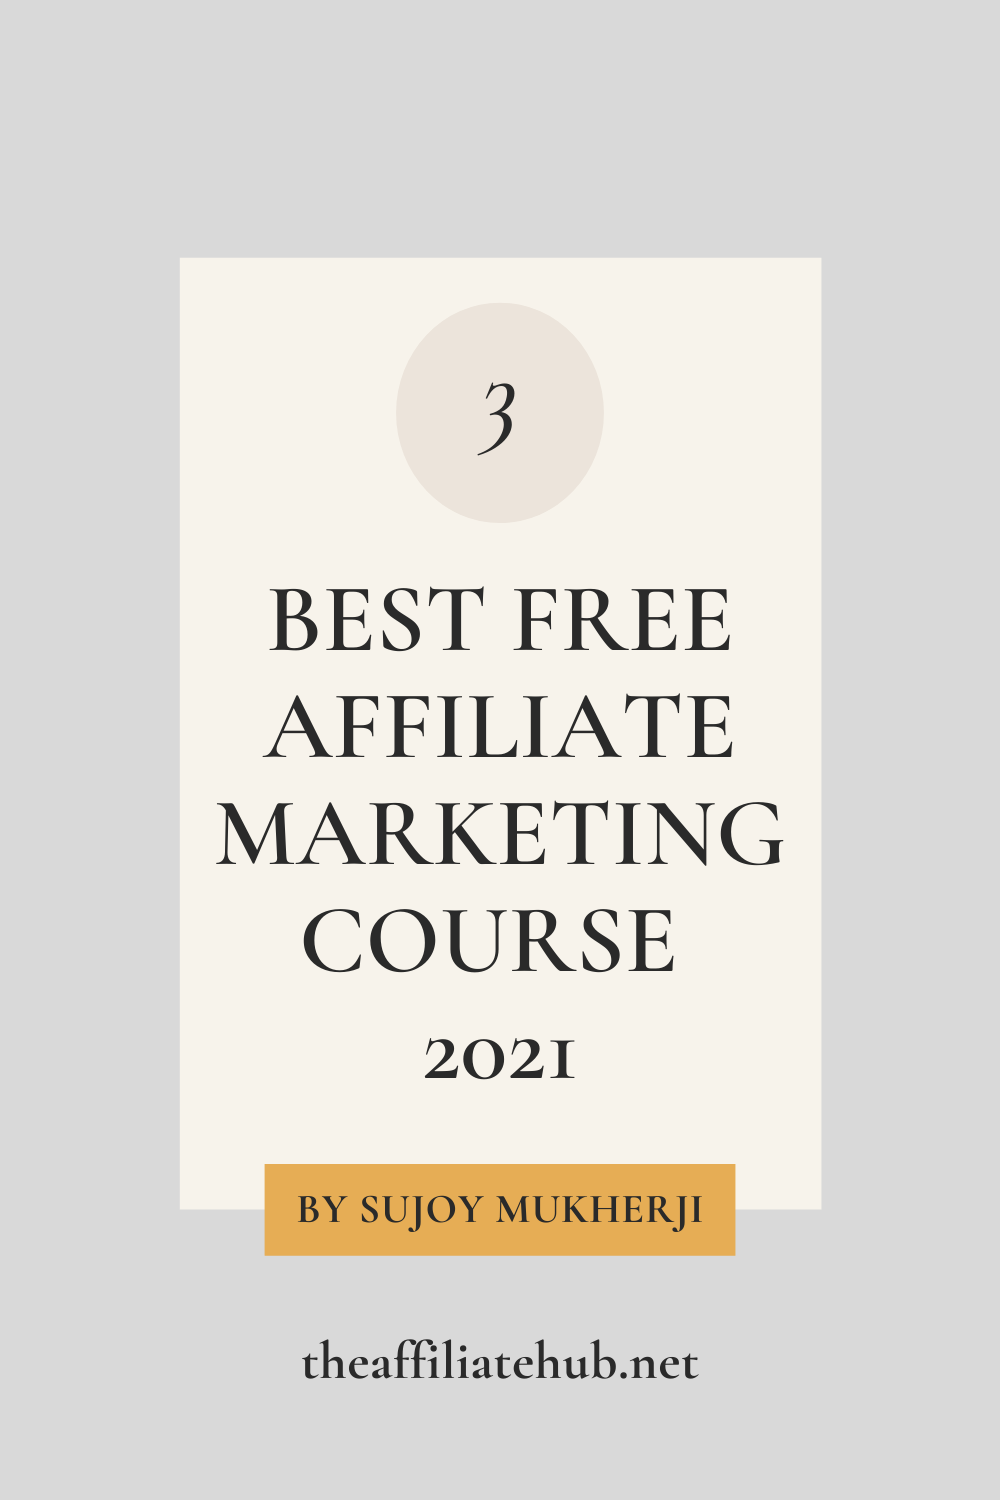 3 best free affiliate marketing course - 3 Best Free Affiliate Marketing Course 2021